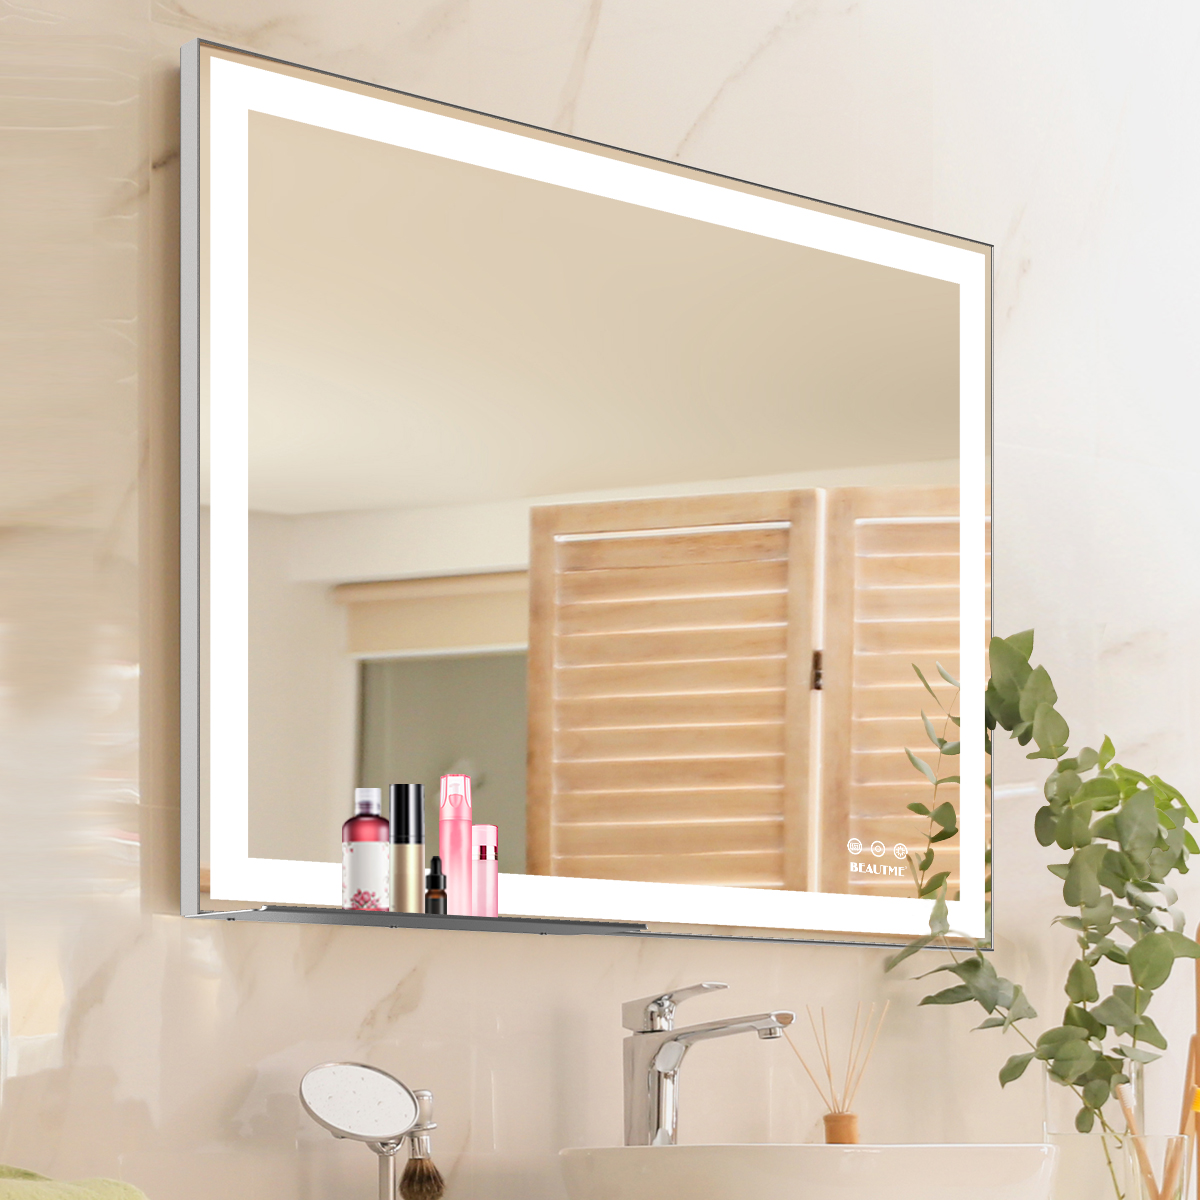 hollywood salon vanity make up wall bathroom Makeup mirror with led Lights Strip with Storage Tray